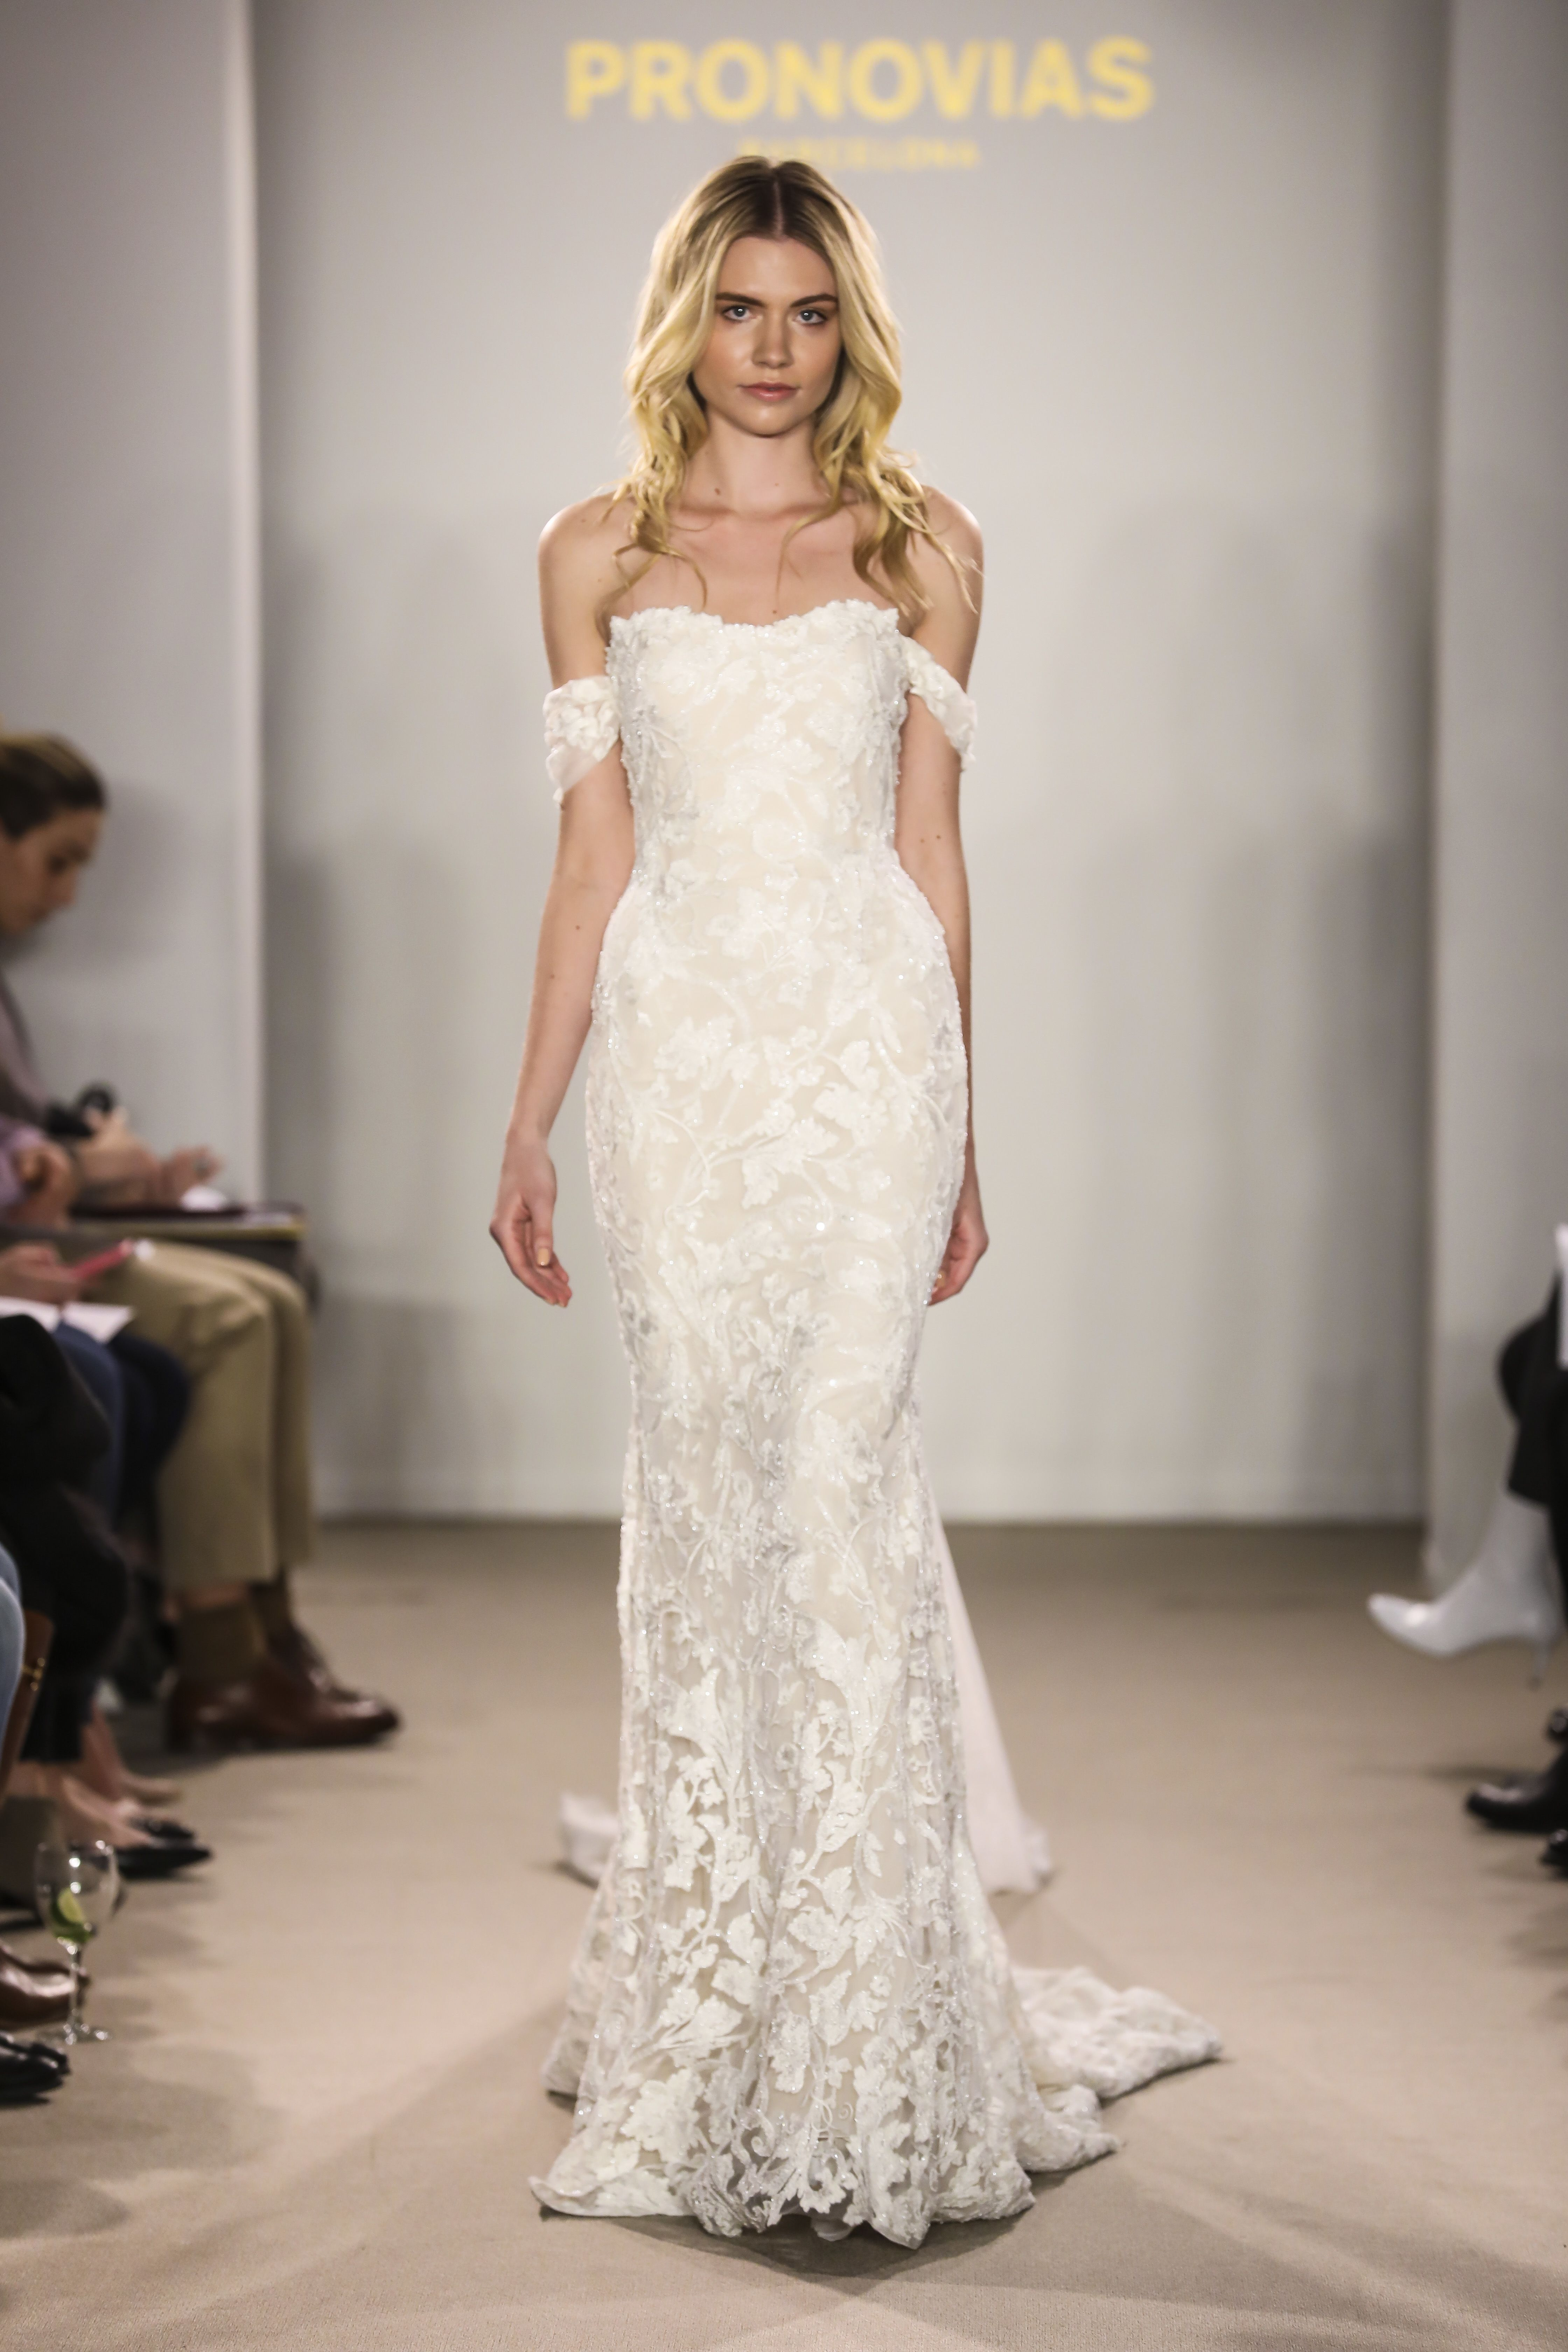 The new atelier pronovias collection is here and itus gorgeous